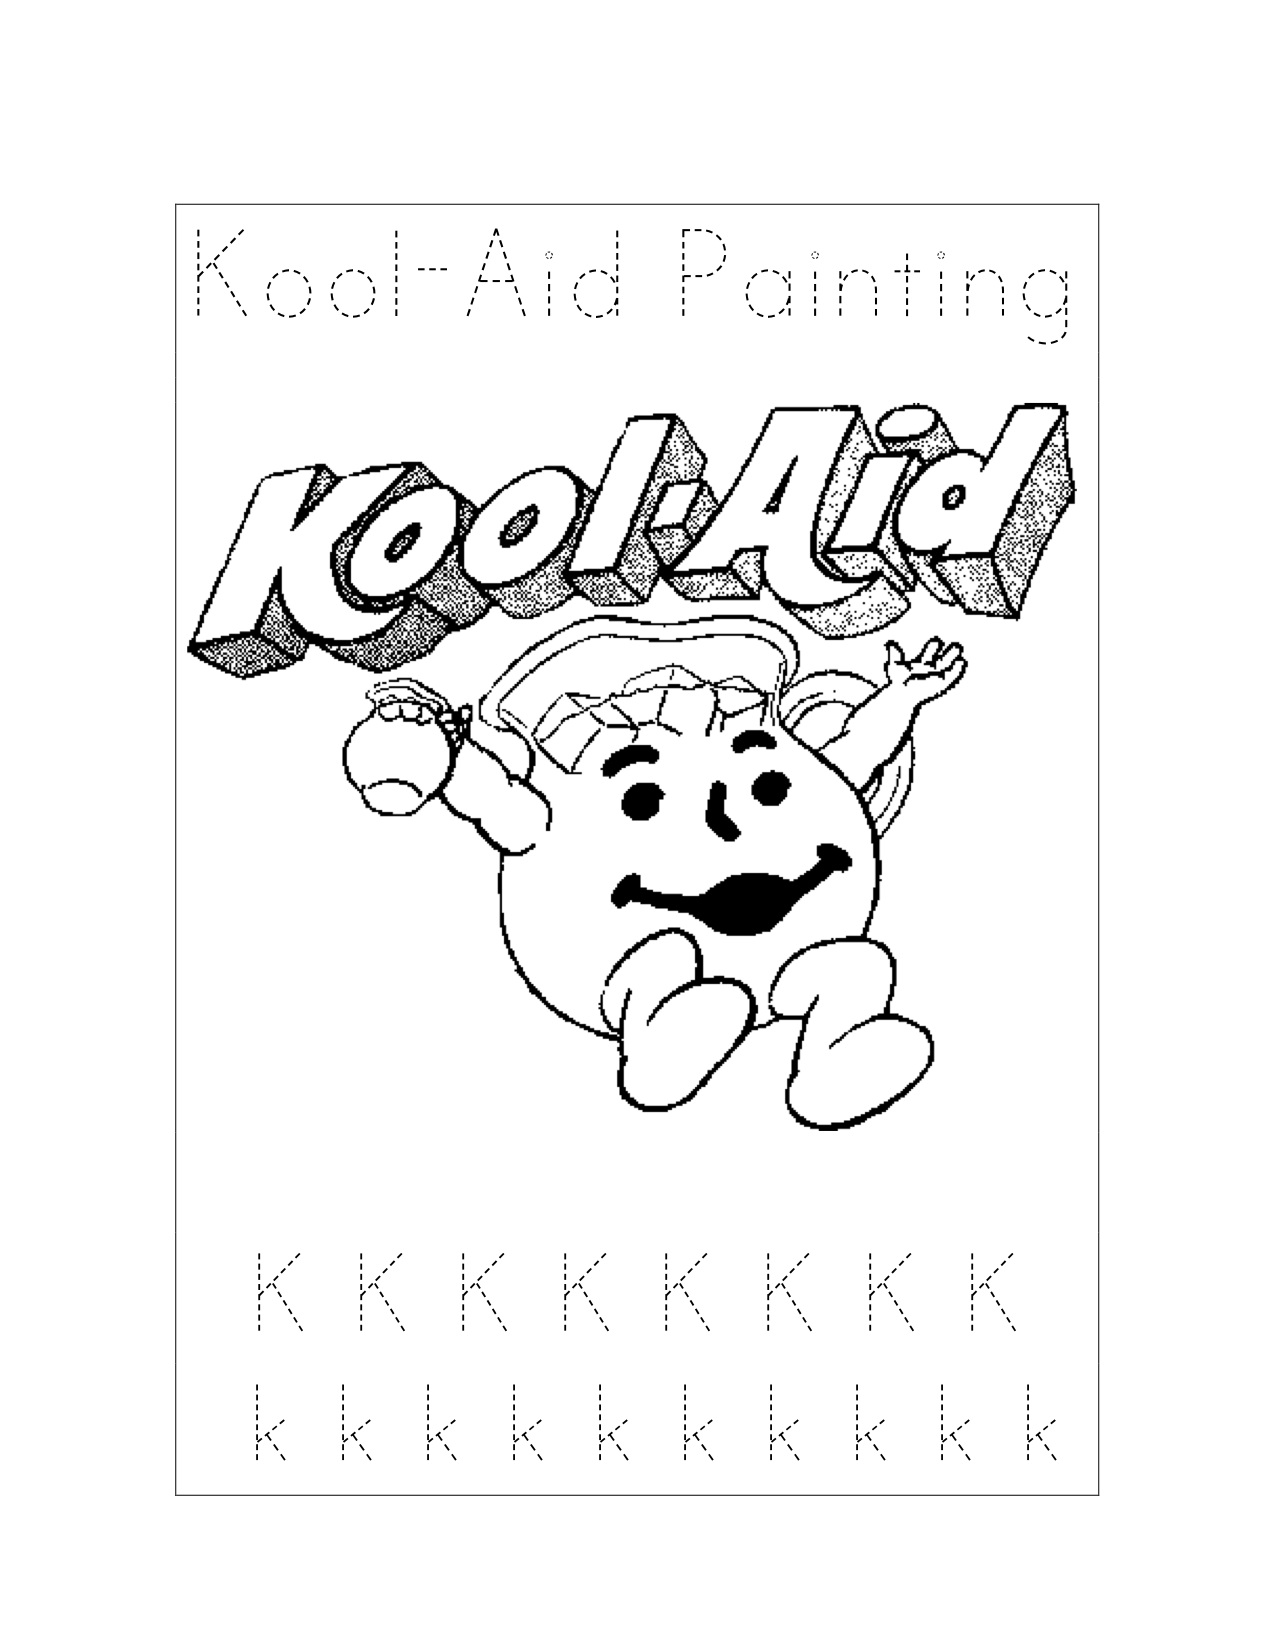 C R A F T 82 Tie Dye Nails Nail Design Marble Nails: Kid C.r.a.f.t. #19: Kool Aid Painting